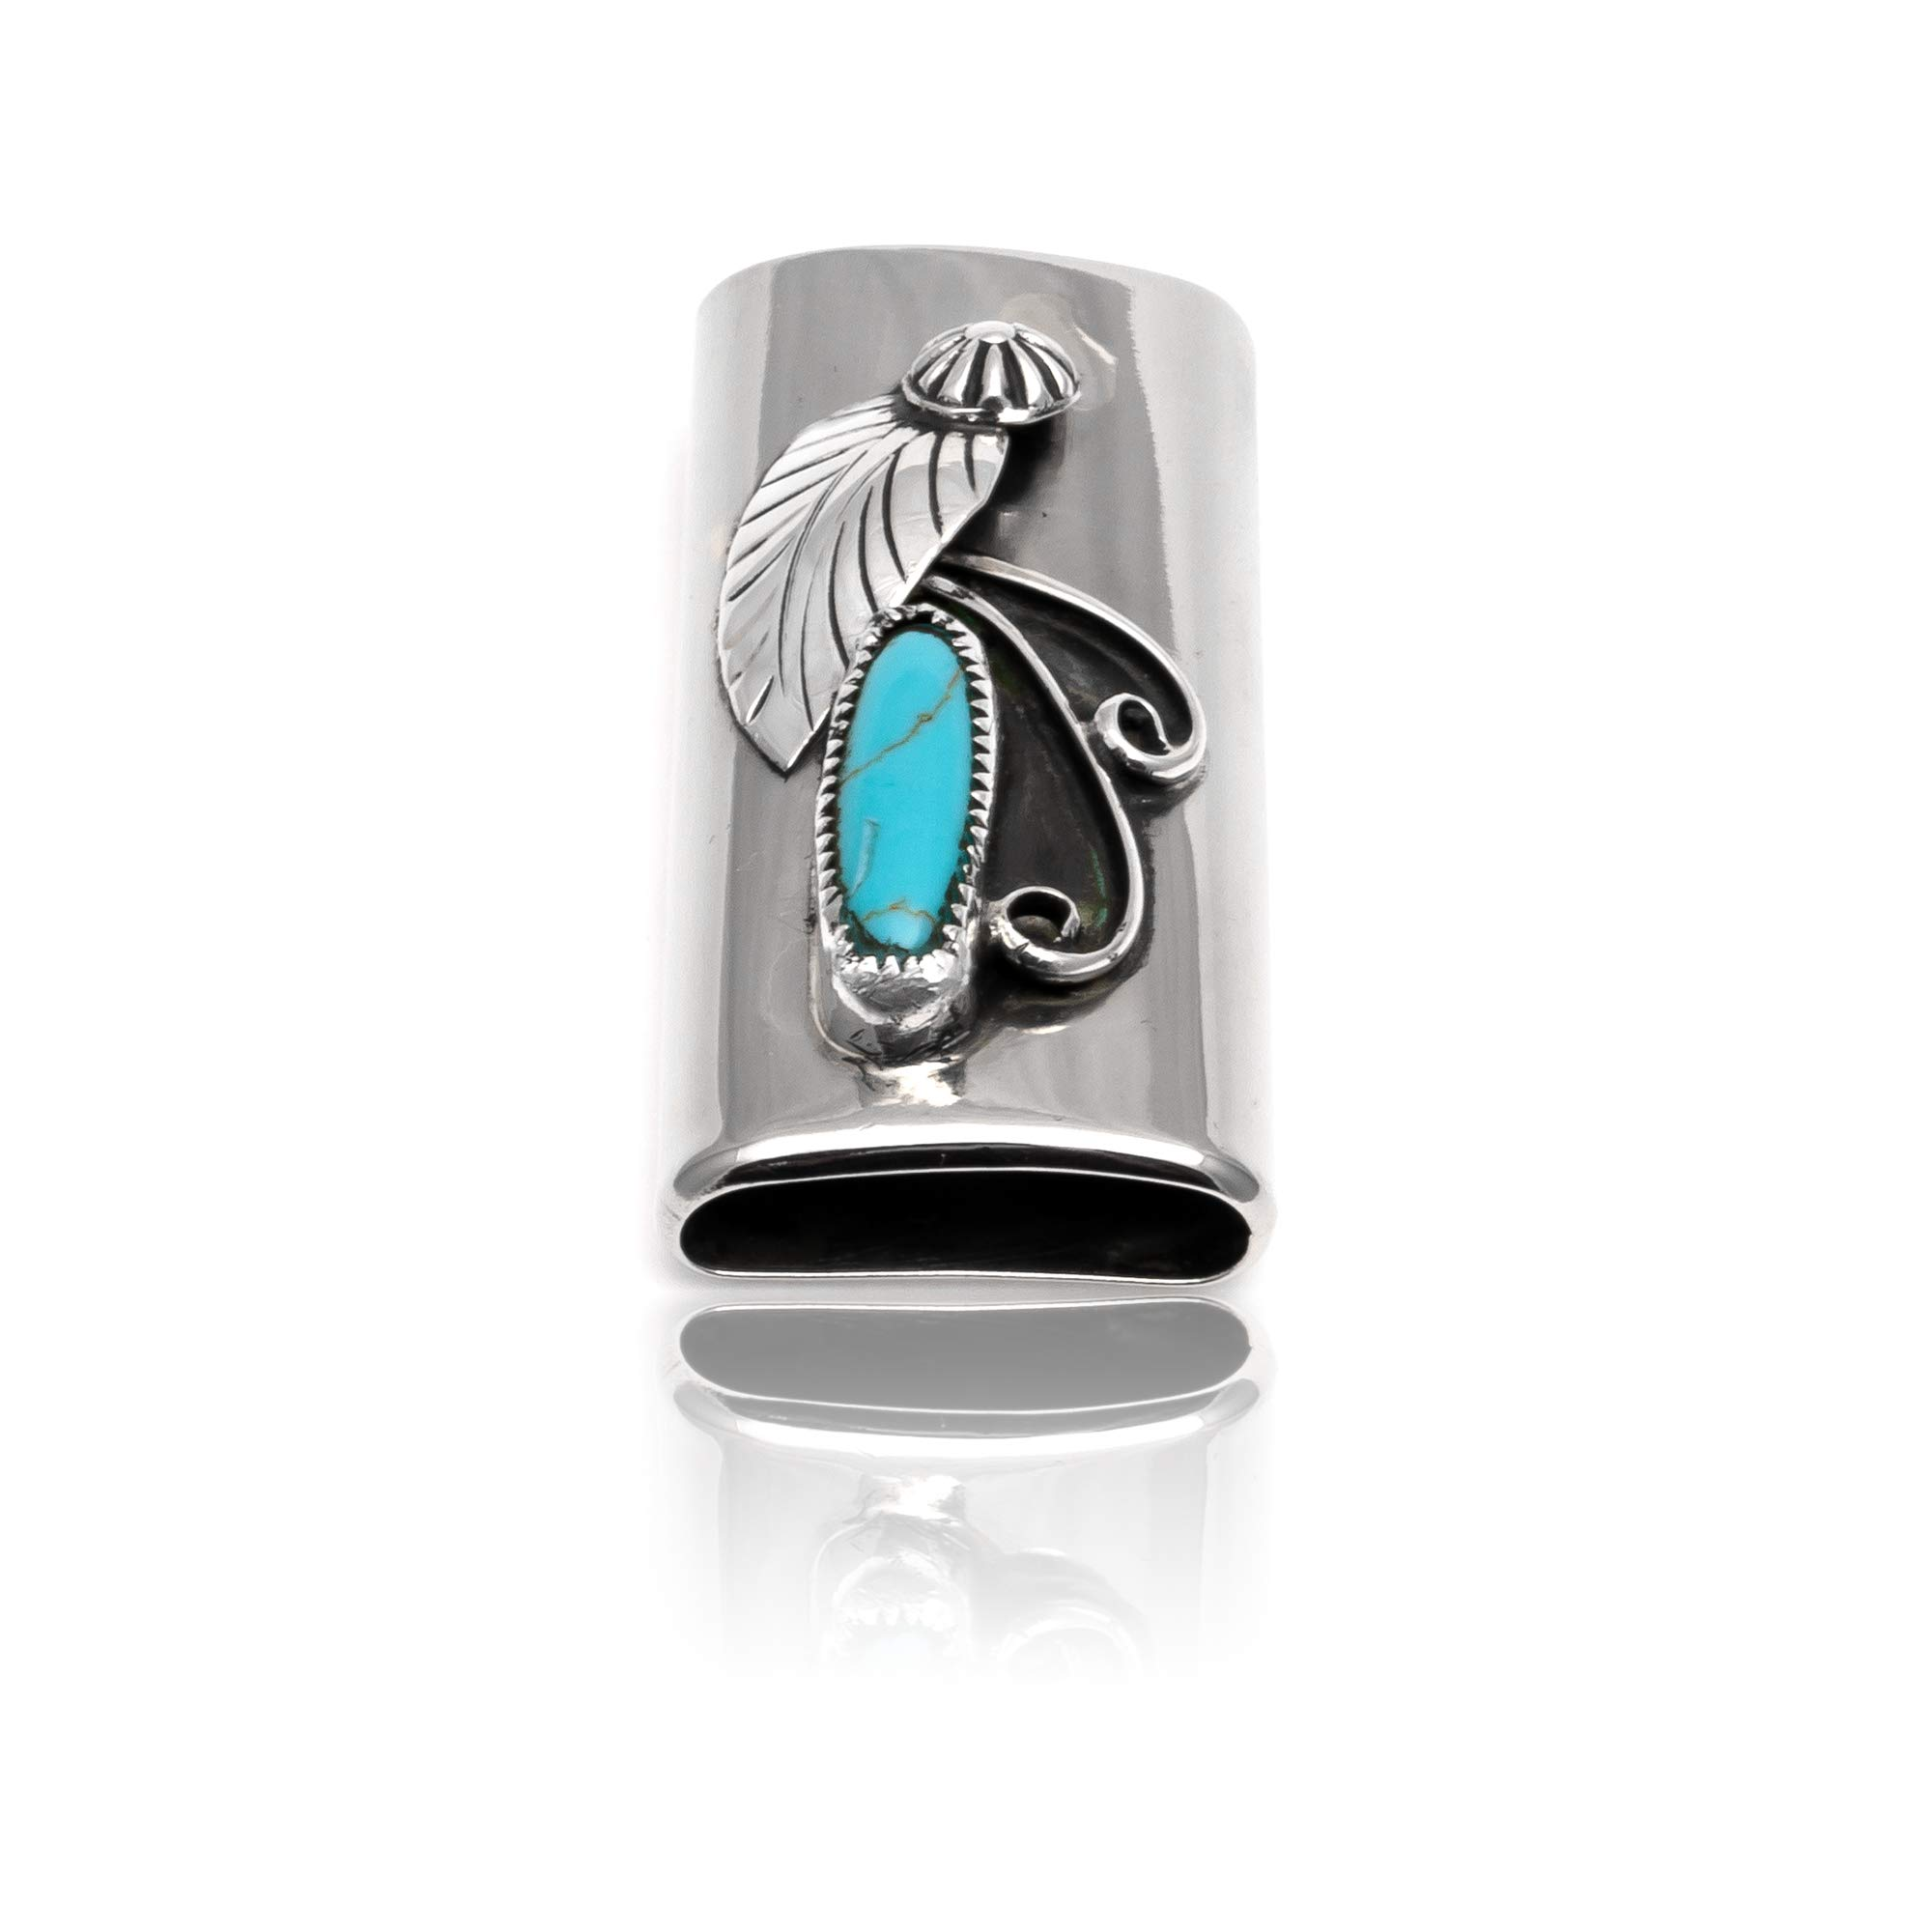 Native-Bay $200Tag Turquoise Silver Nickel Certified Navajo Flower Leaf Lighter Case 18334 Made by Loma Siiva by Native-Bay (Image #5)